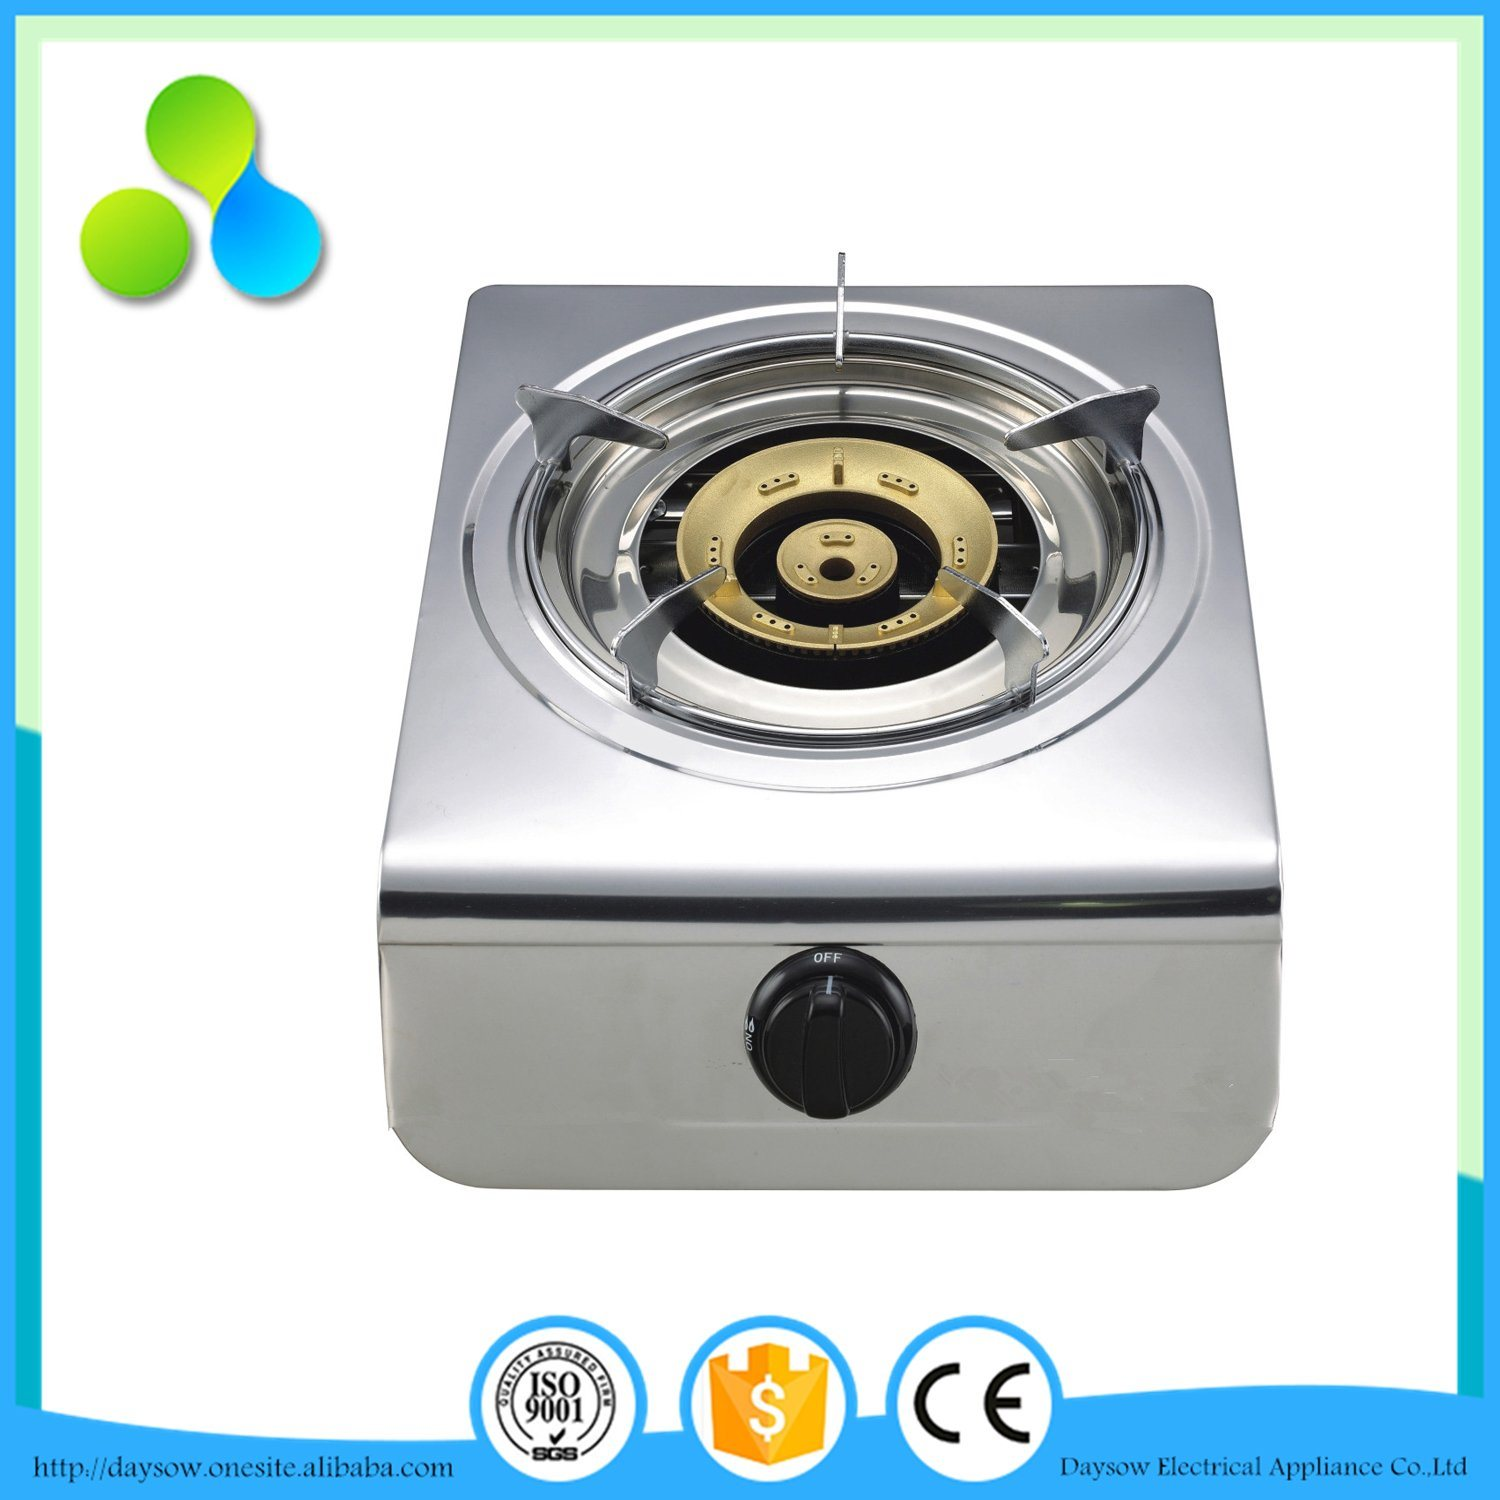 New Ignition Way Natural Gas Gas Cooker